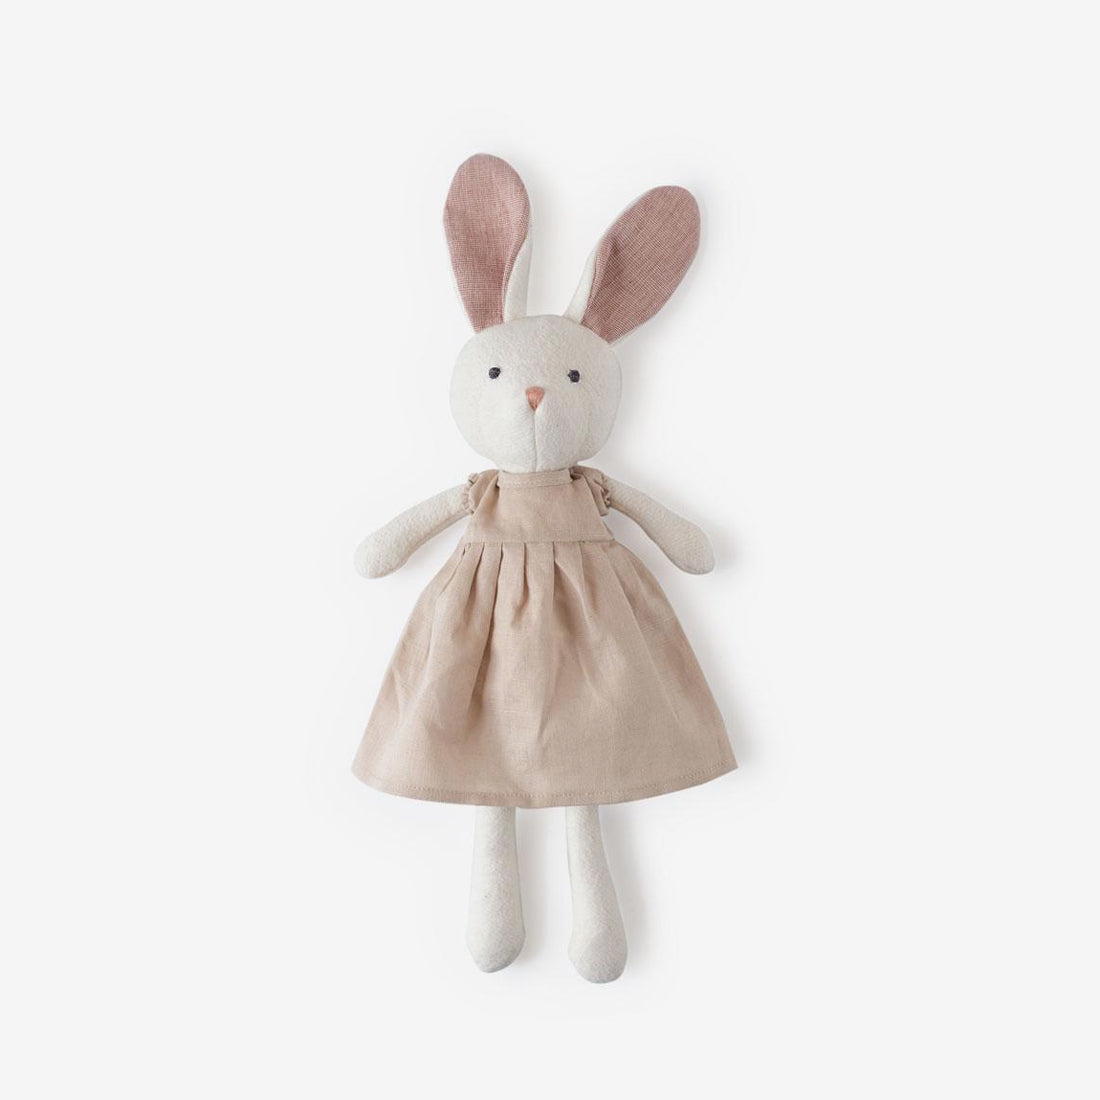 Emma Rabbit in Peachy Beige Linen Dress